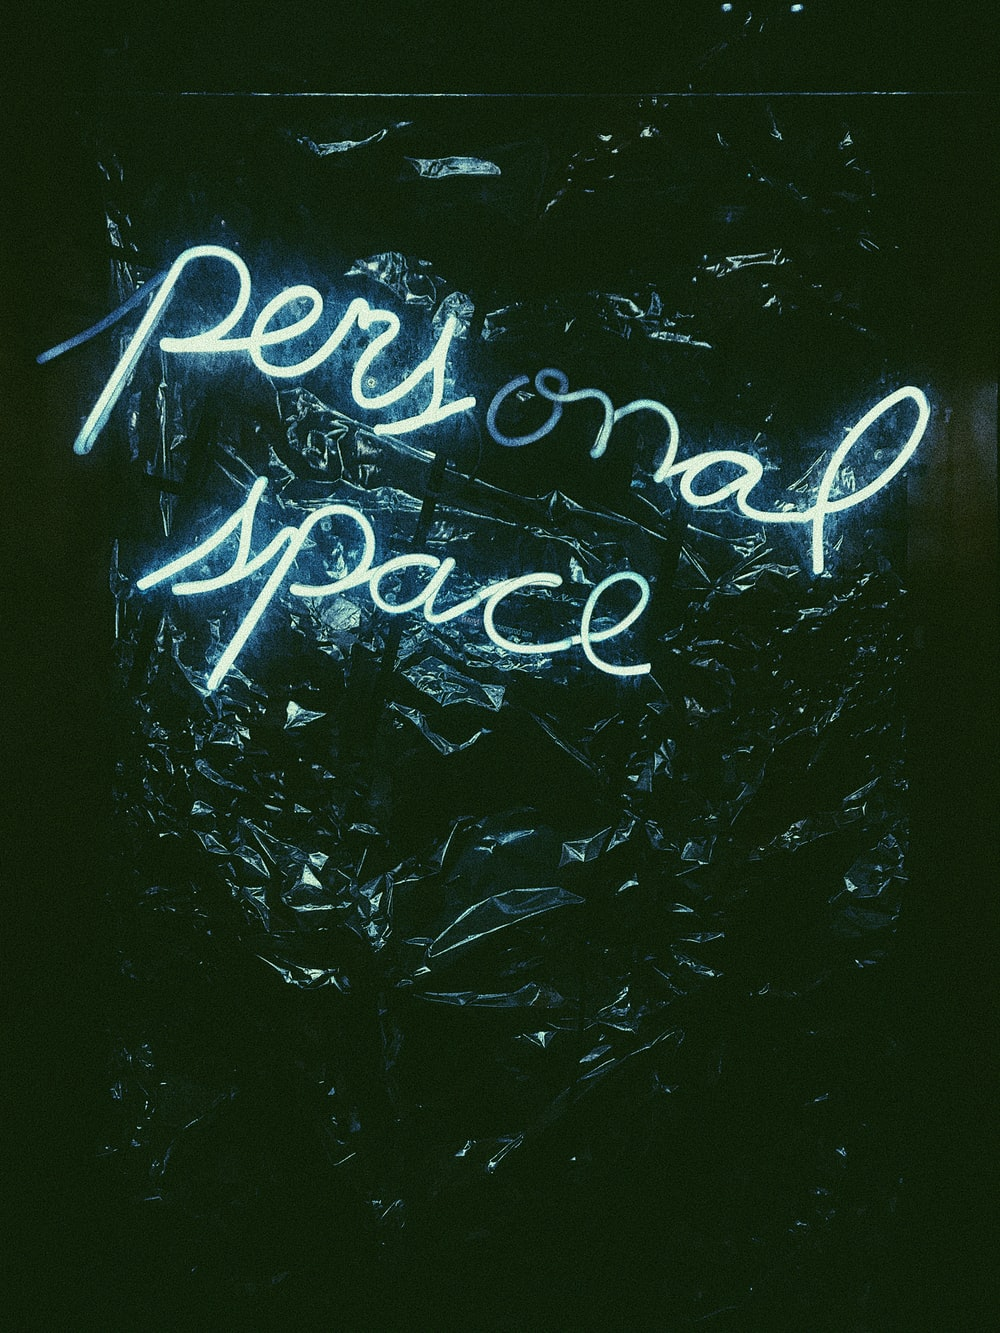 lit personal neon signage